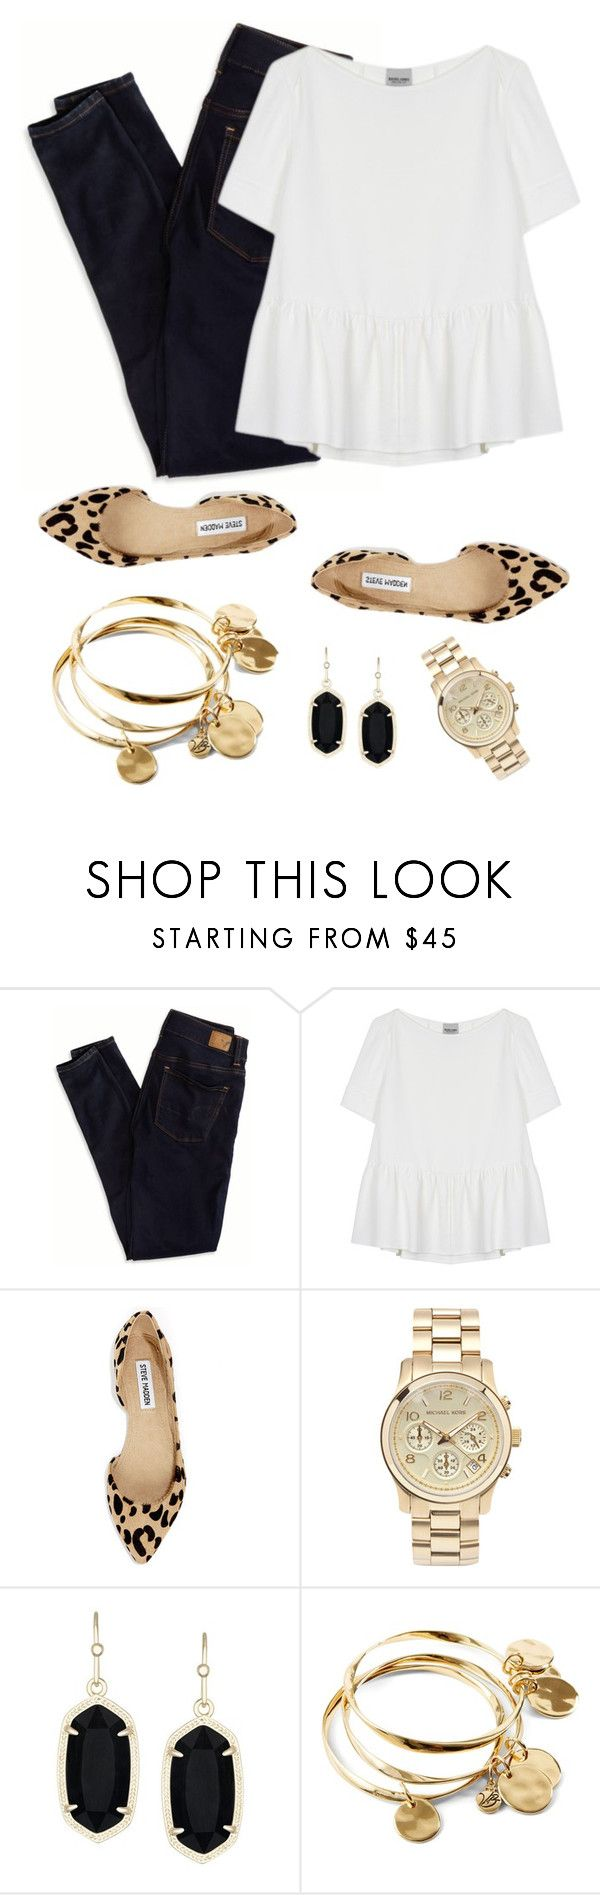 """Untitled #195"" by hkmmcds ❤ liked on Polyvore featuring American Eagle Outfitters, Rachel Comey, Steve Madden, Michael Kors, Kendra Scott and Vera Bradley"